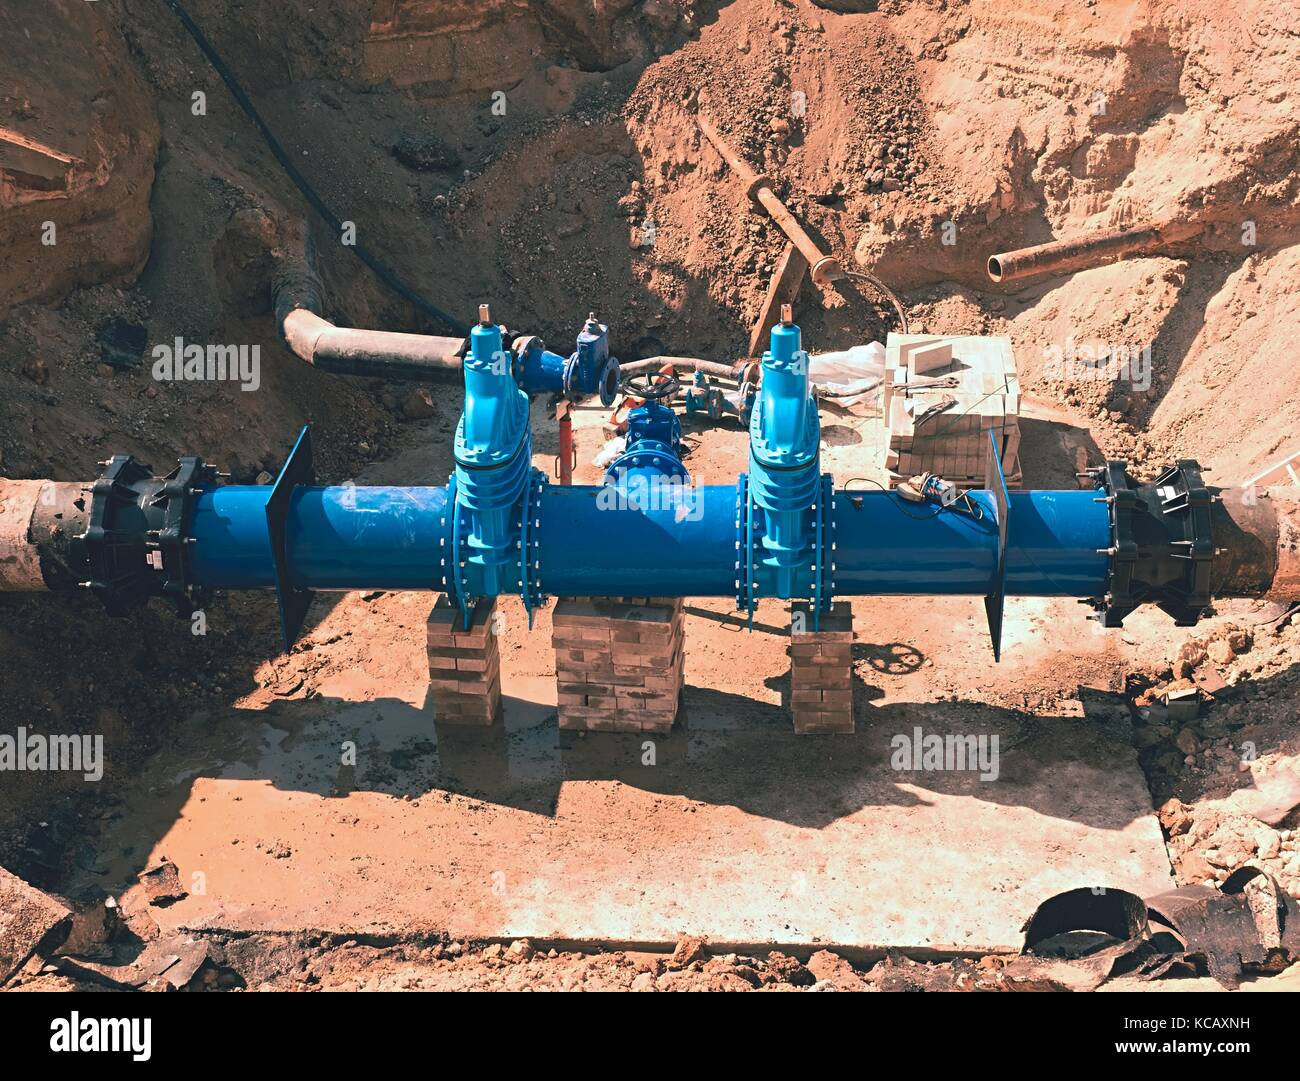 Reconstruction of main City water supply pipeline in underground. 500mm water pipeline with gate valves, 250mm branch. - Stock Image